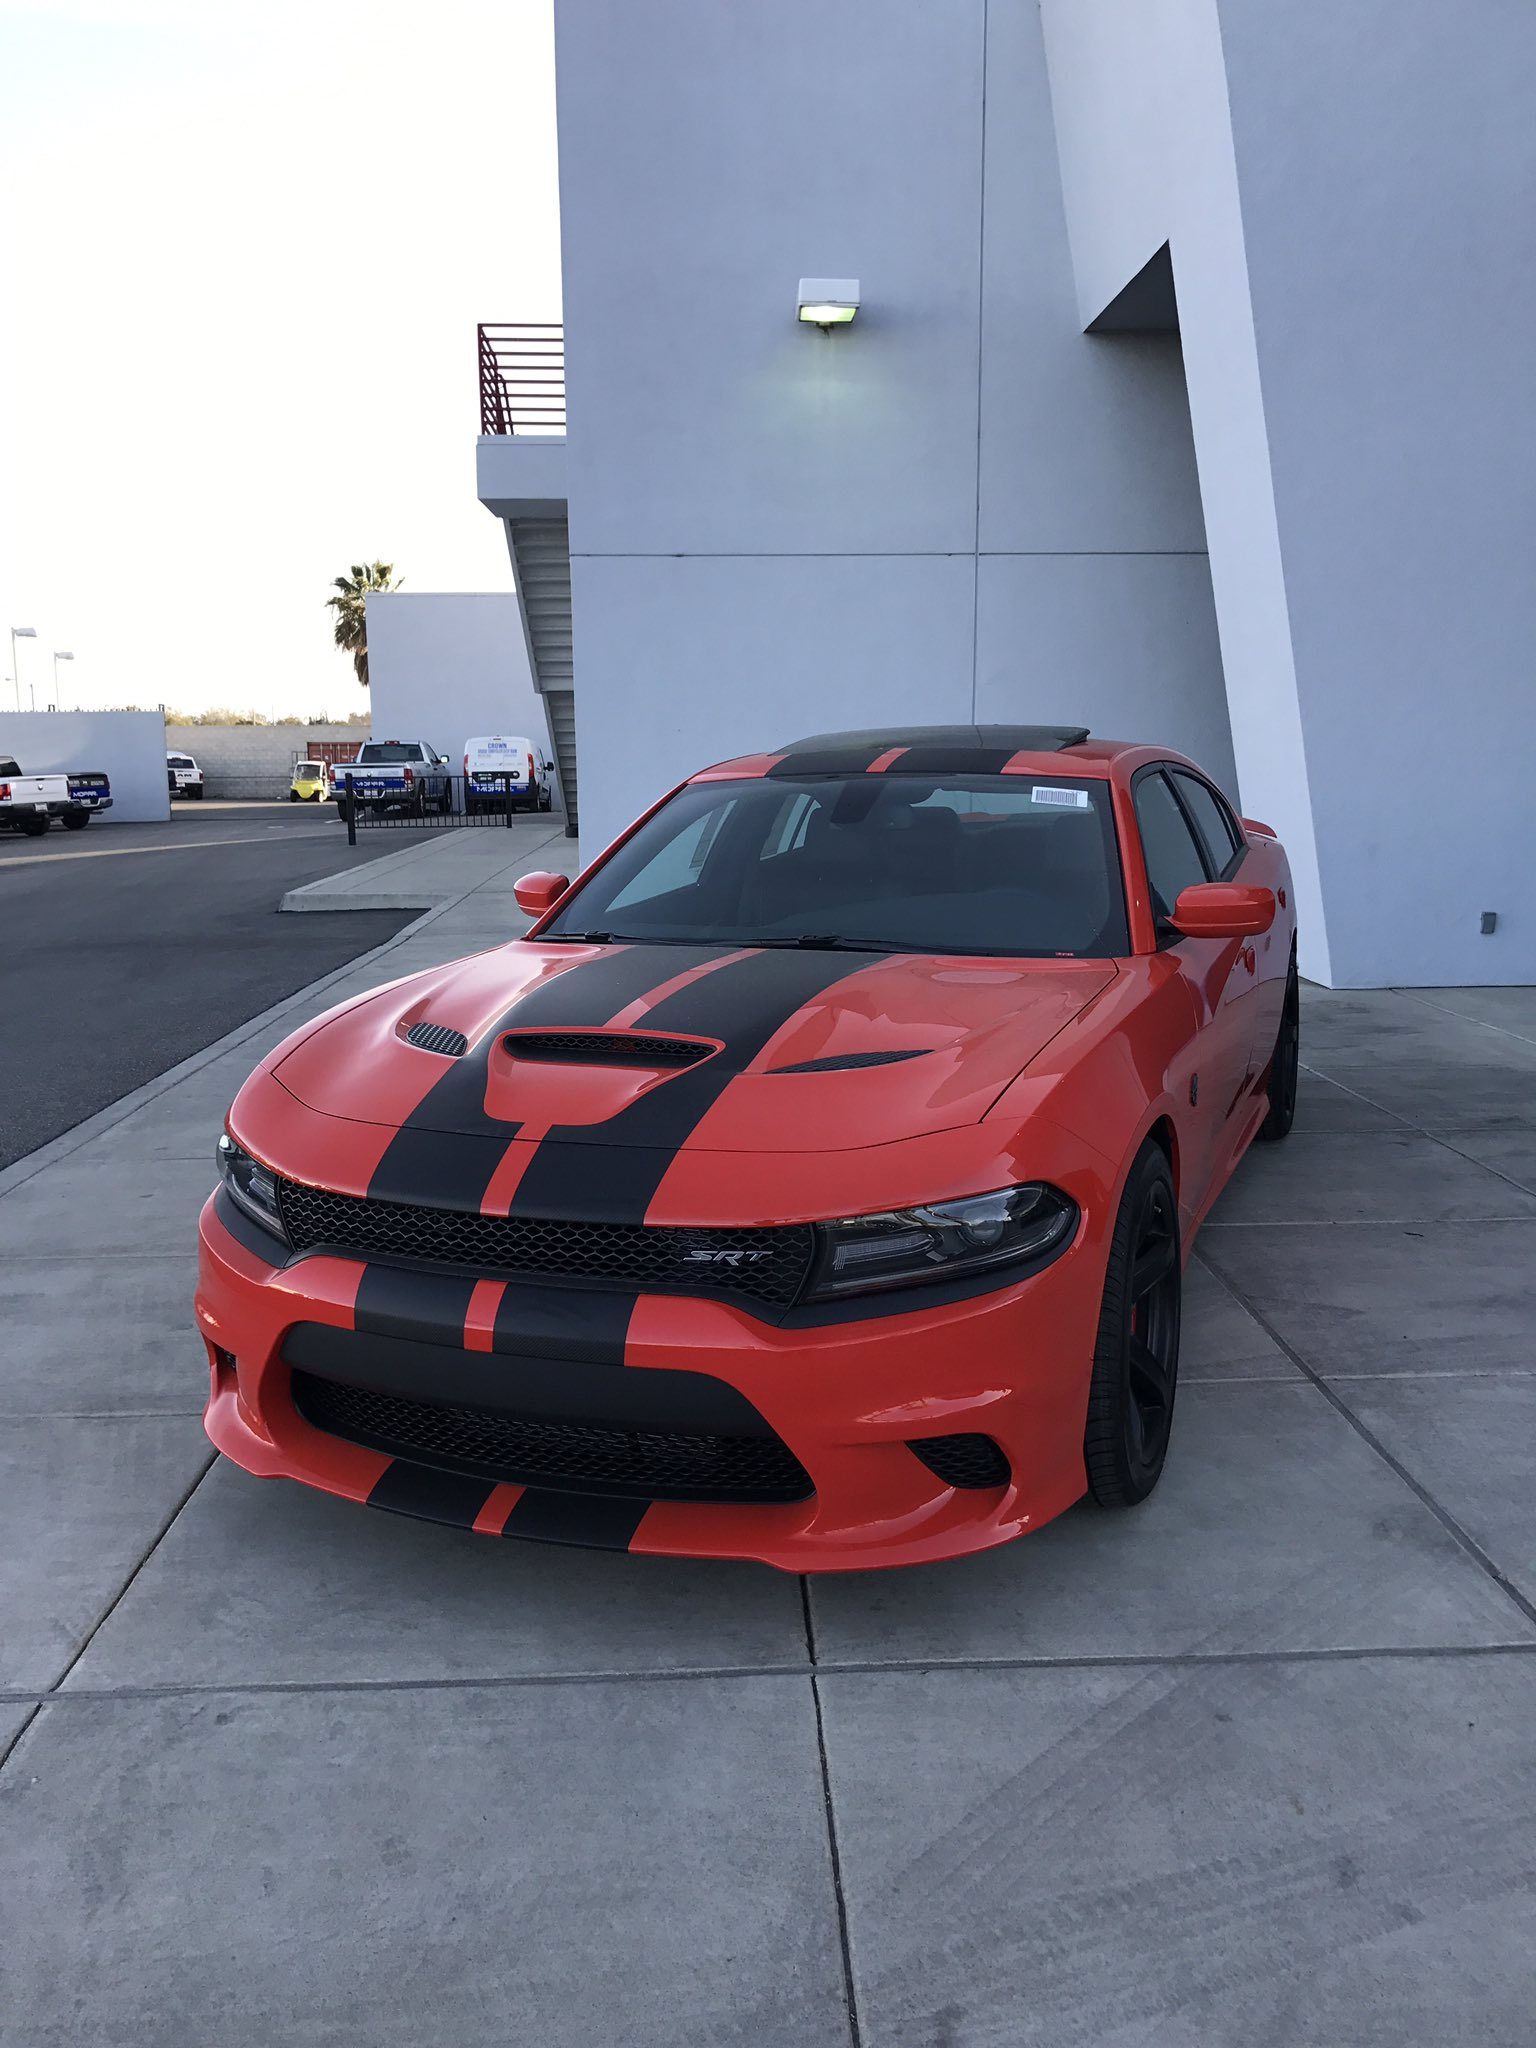 Need y'all's opinion— should I get this super sexy orange 2107 Dodge Charger Hellcat https://t.co/mLrNEEFNAx